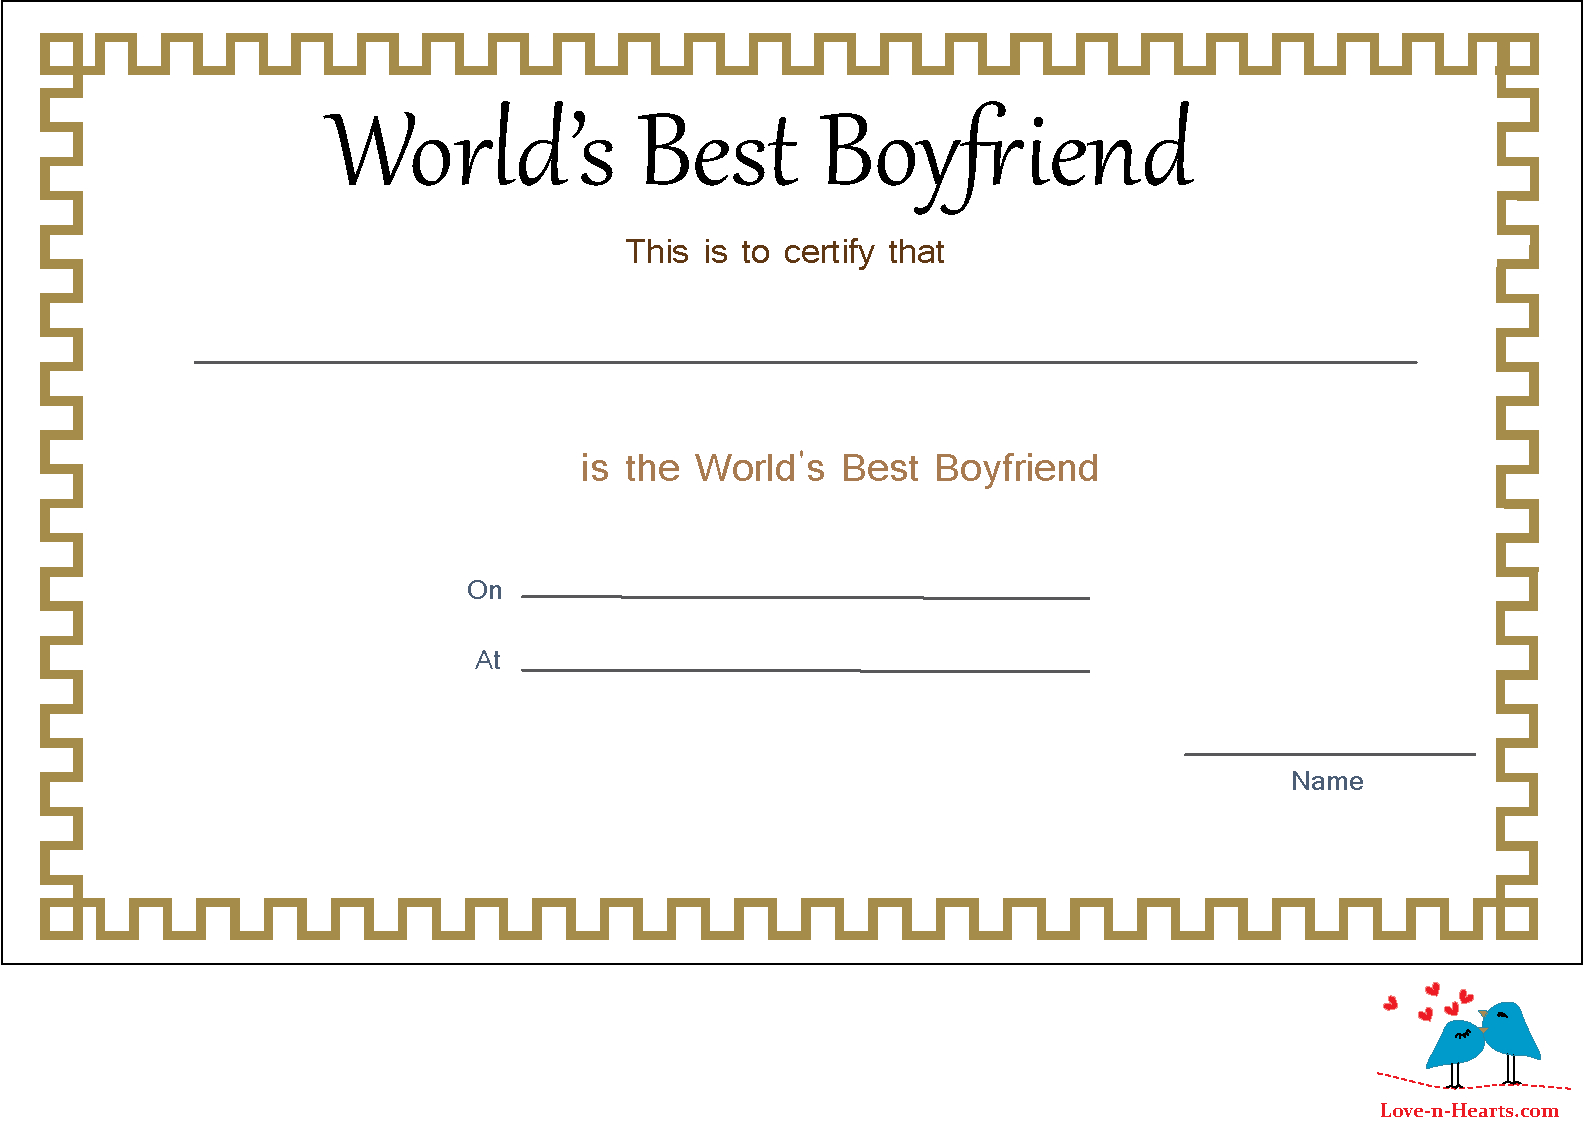 Elegant World's Best Boyfriend Certificate | Love You intended for Love Certificate Templates